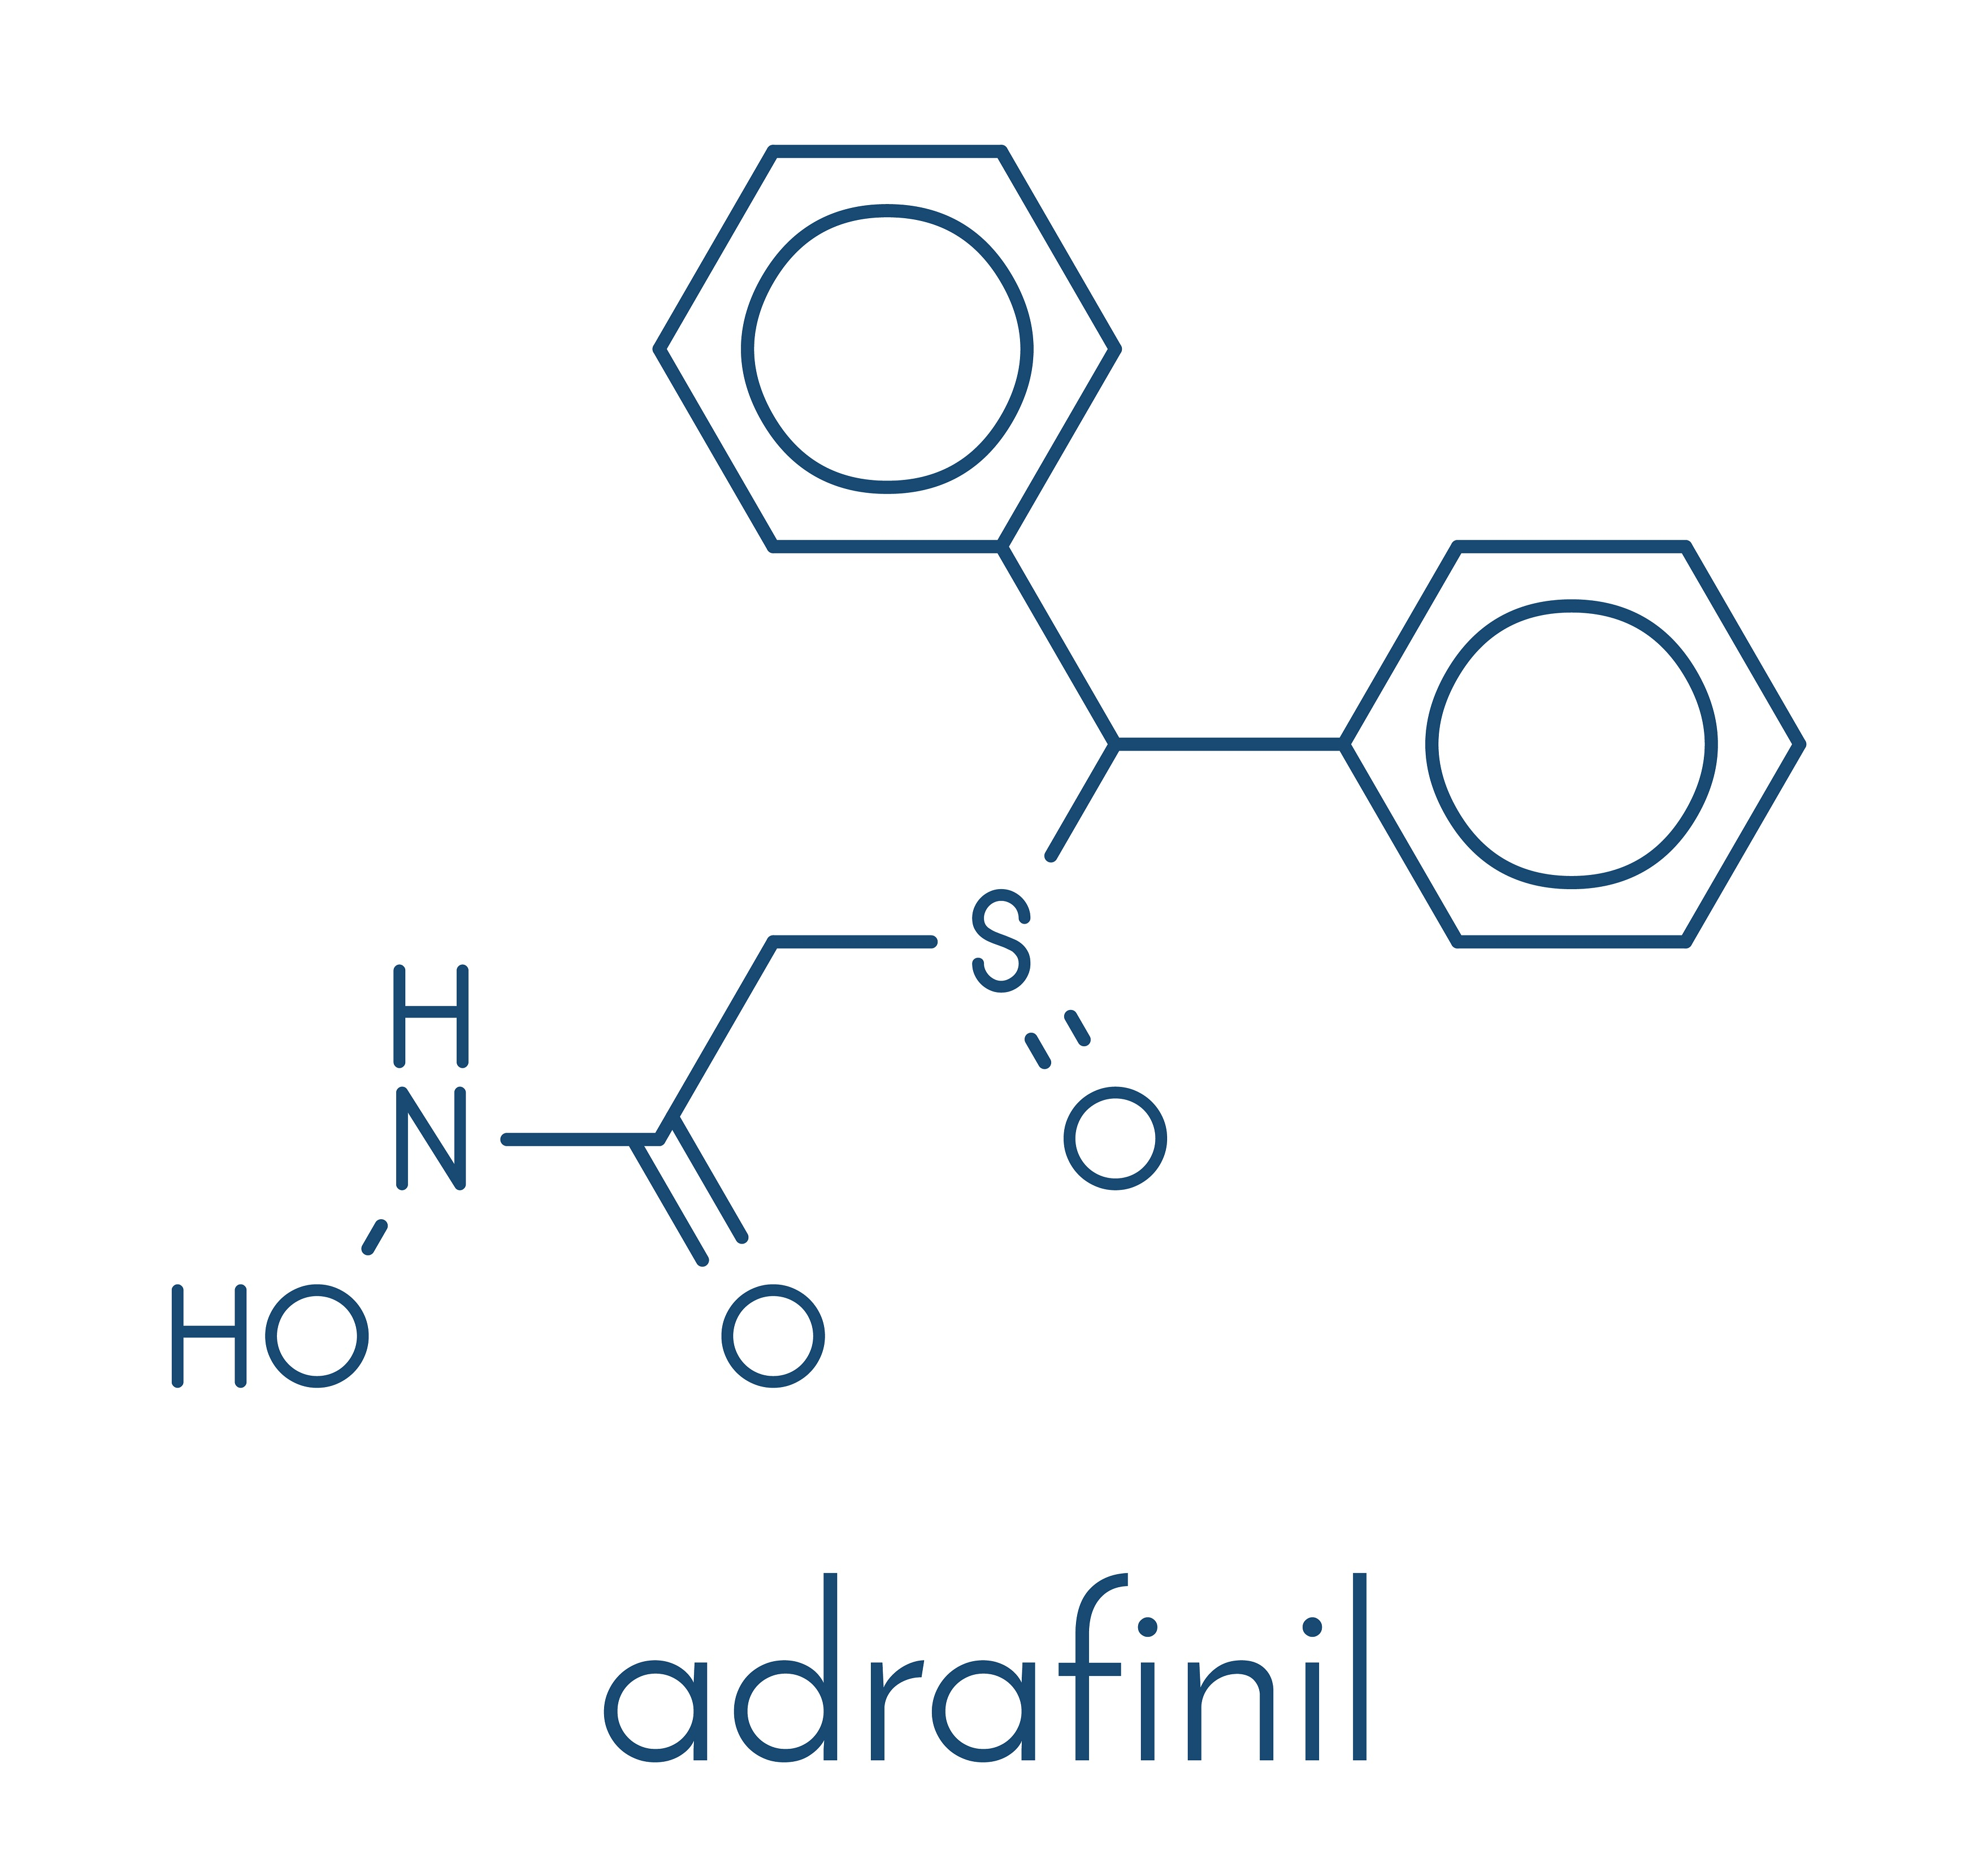 Adrafinil - chemical structure